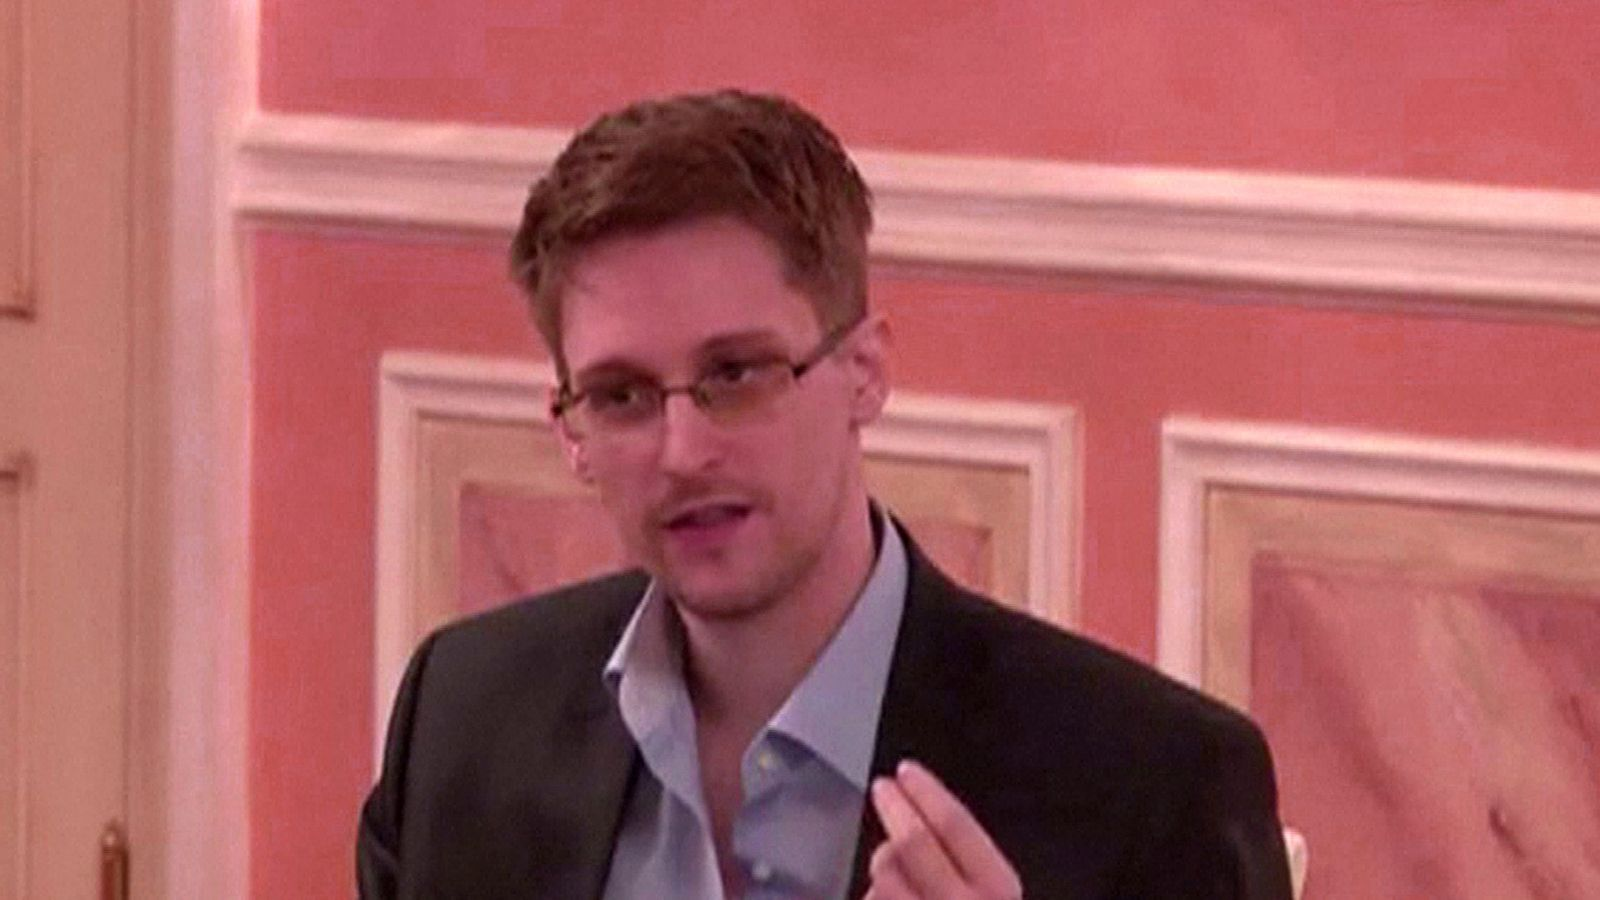 Anastasia Deeva Leaked newsody : how the snowden leaks damaged security services